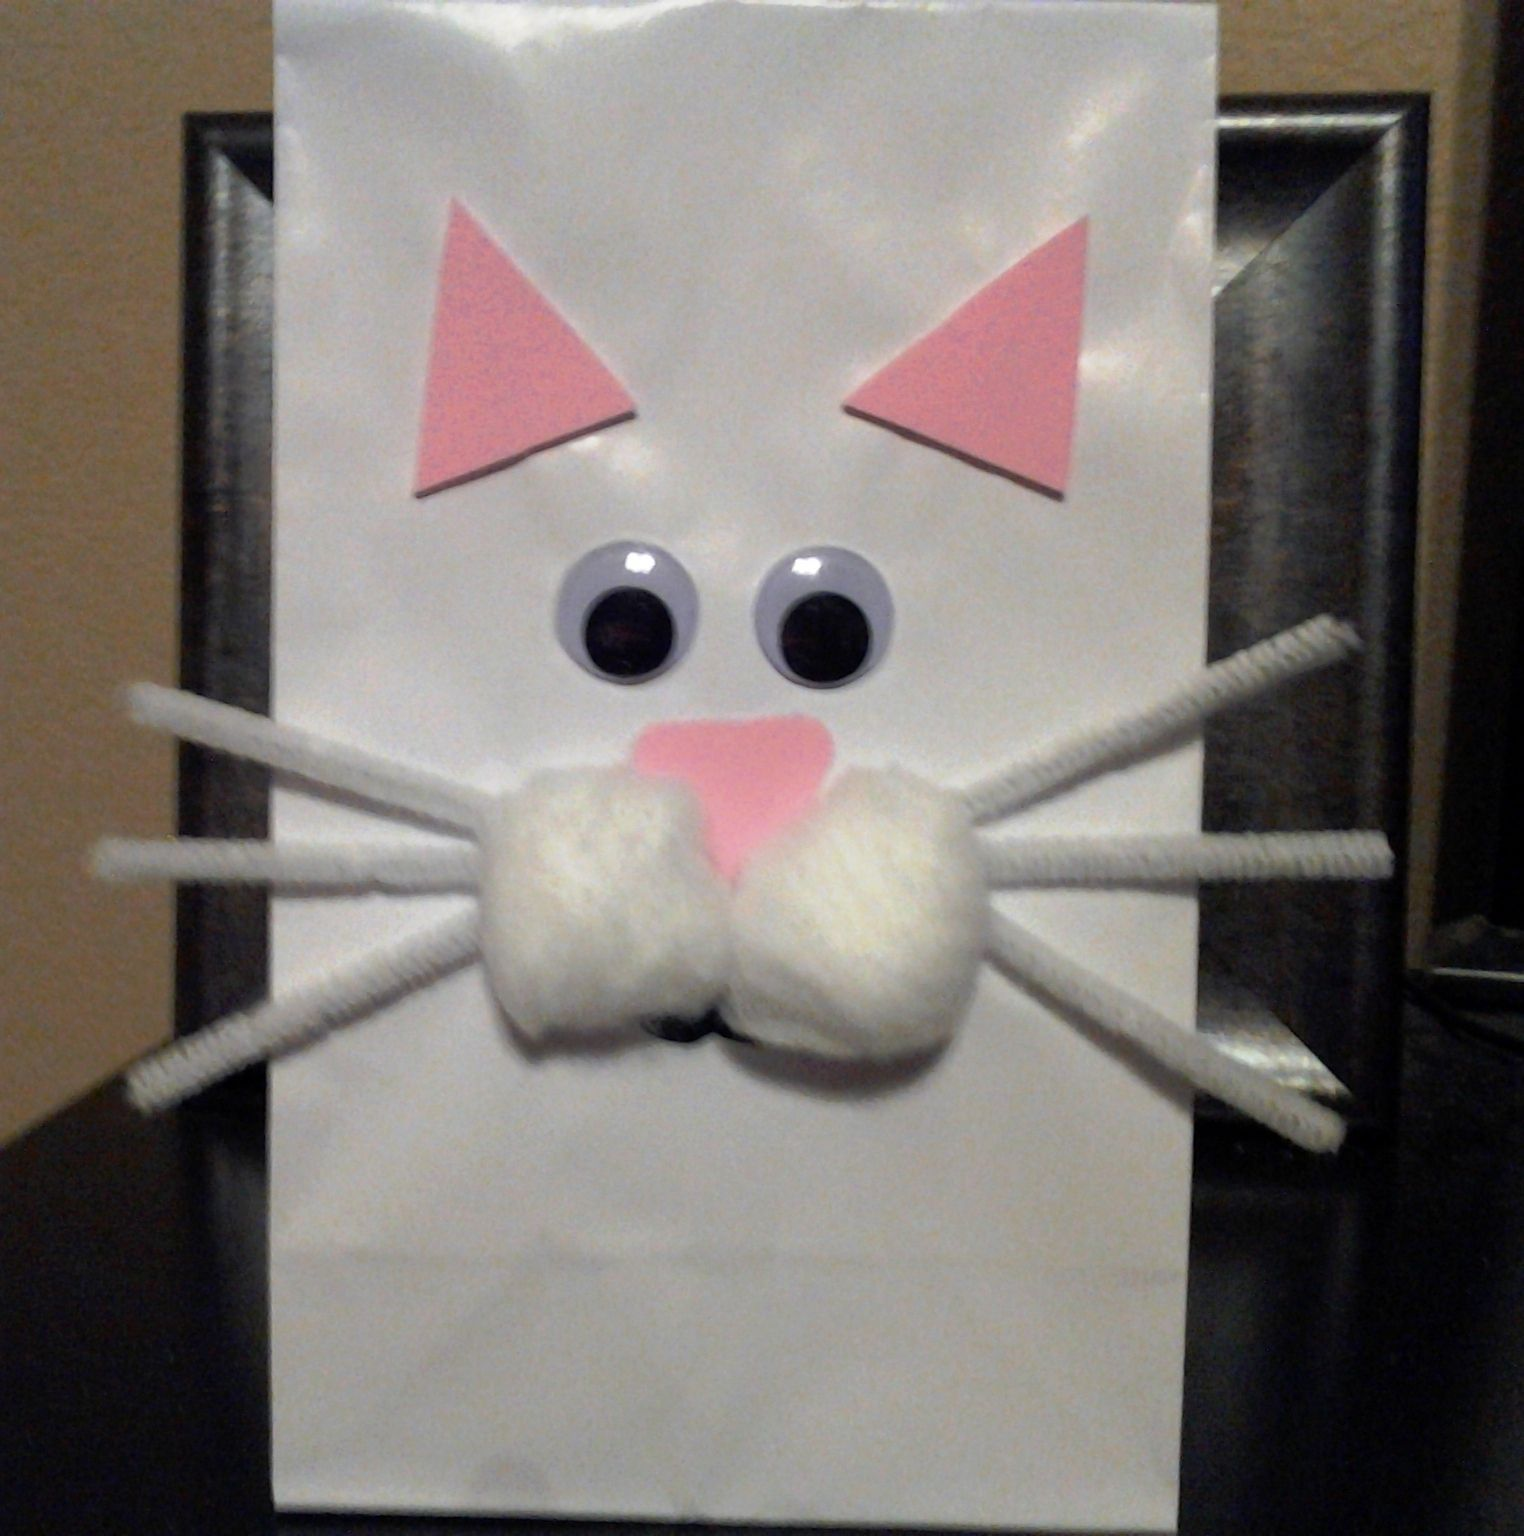 Birthday Party Cat Ears: White Lunch Sacks, Cotton Balls